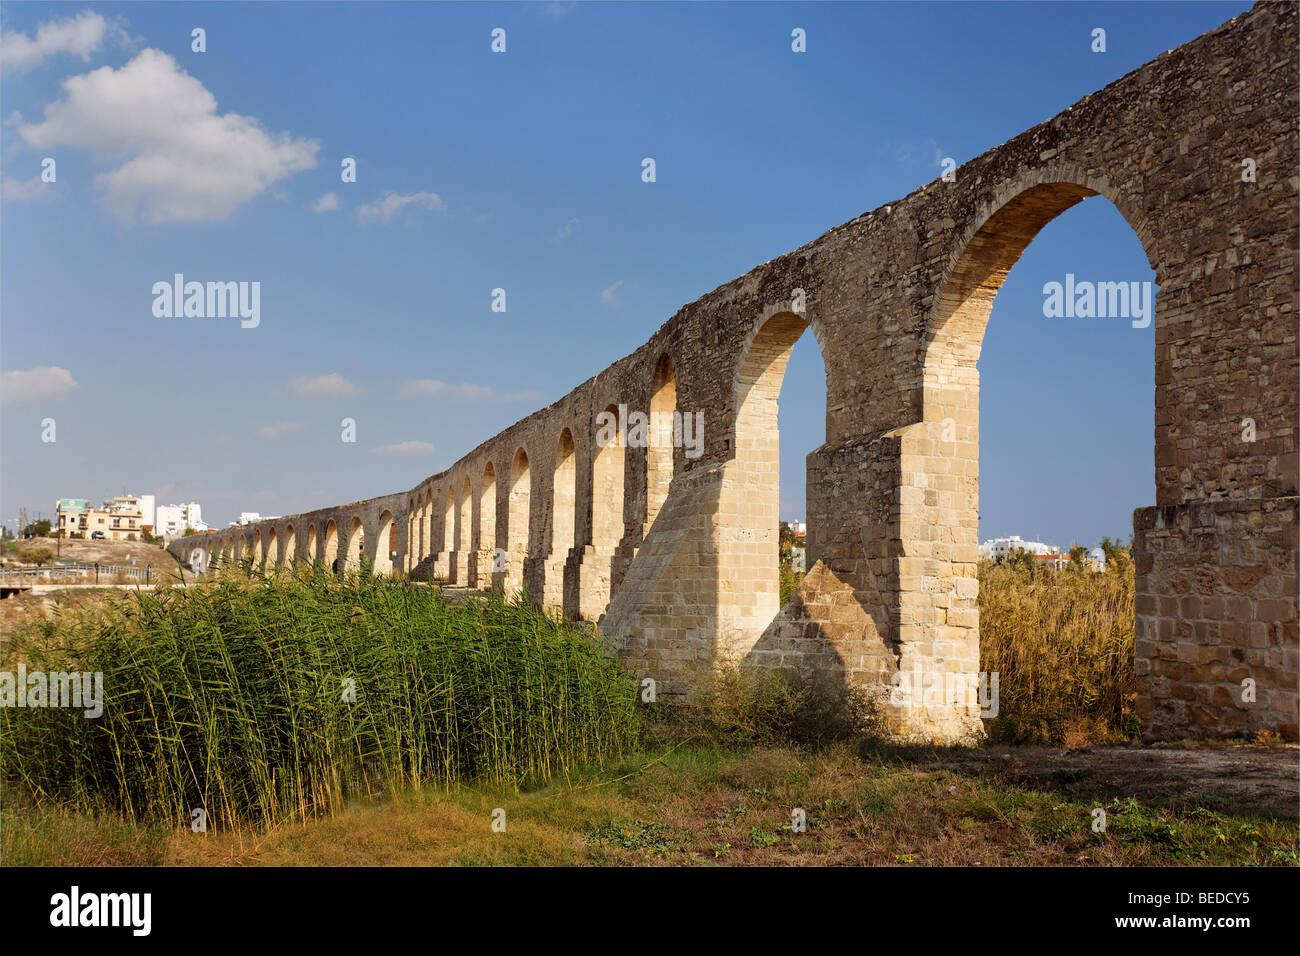 Osmanian aqueduct, built 1745, supplied Larnaca with water till 1939, Cyprus, Asia Stock Photo